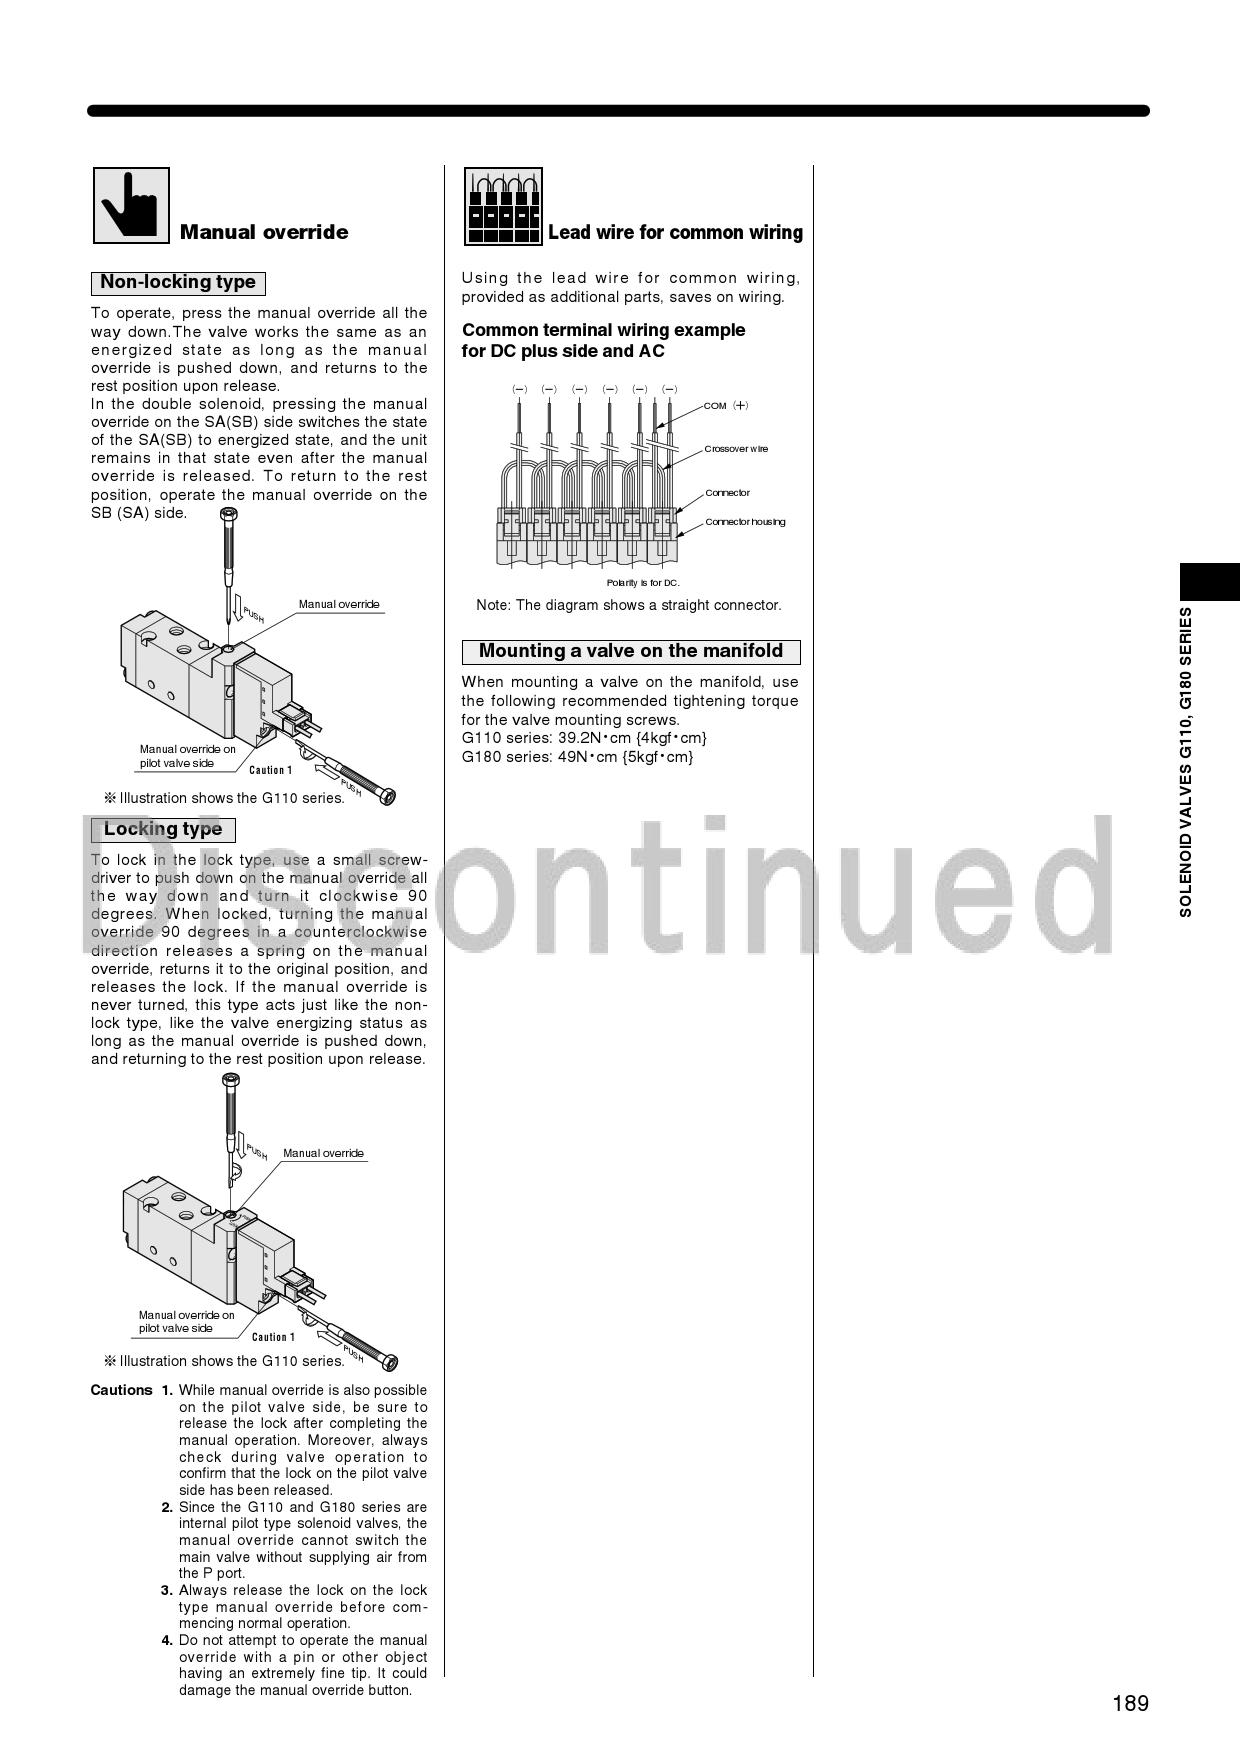 2002 isuzu axiom parts diagram  isuzu  auto wiring diagram